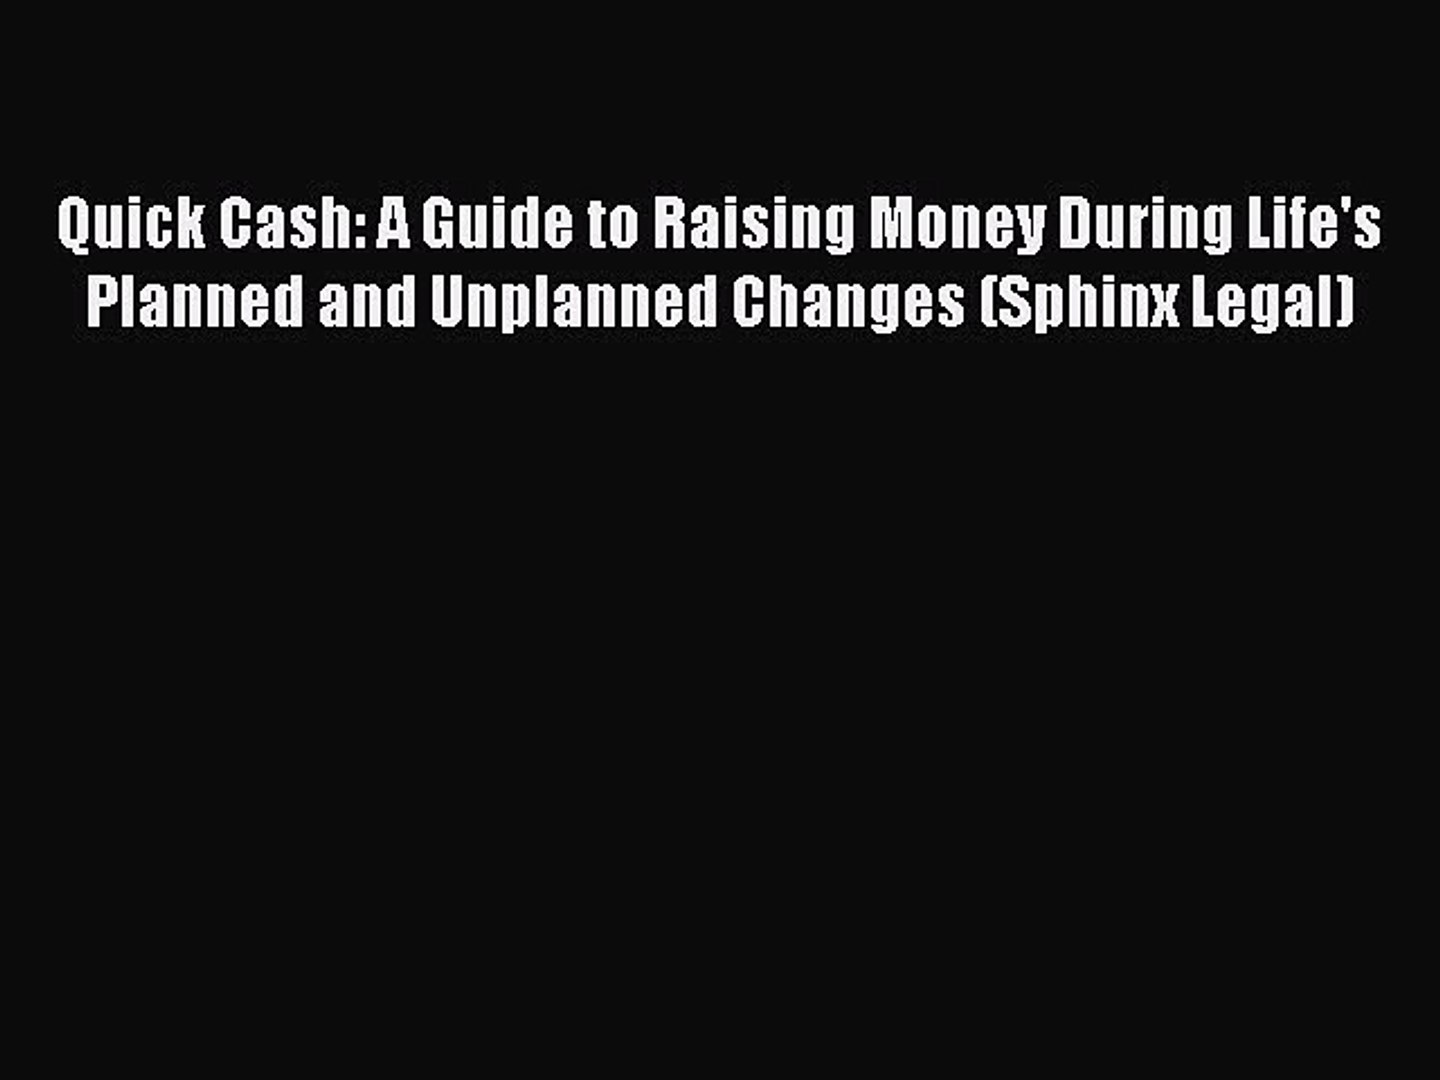 Read Quick Cash: A Guide to Raising Money During Life's Planned and Unplanned Changes (Sphinx